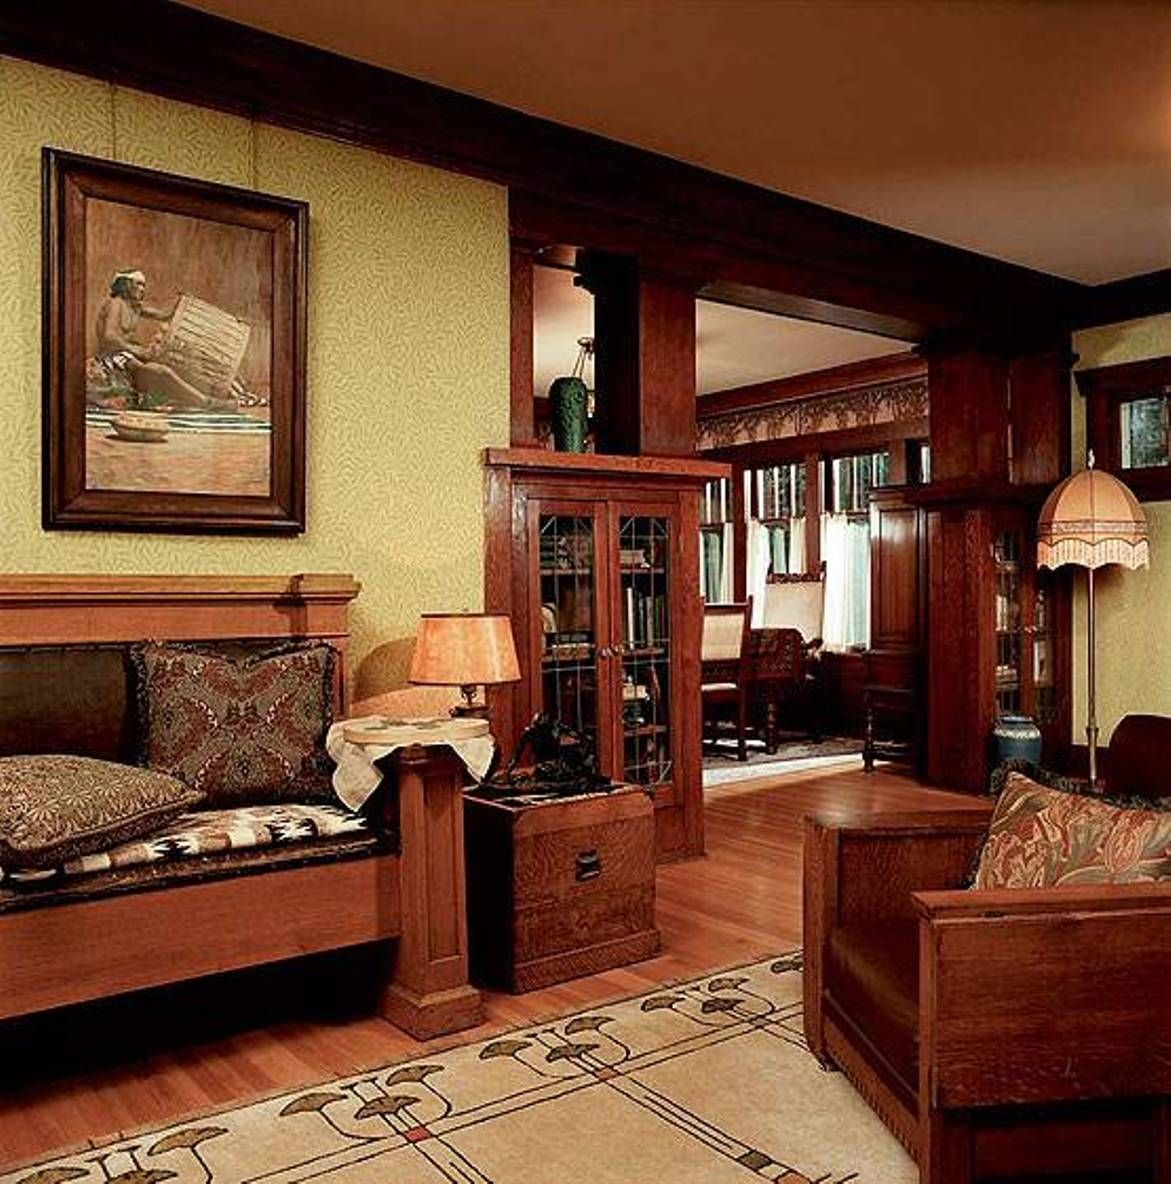 Home Design And Decor Craftsman Interior Decorating Styles With Wallpaper Hanging Wall Art